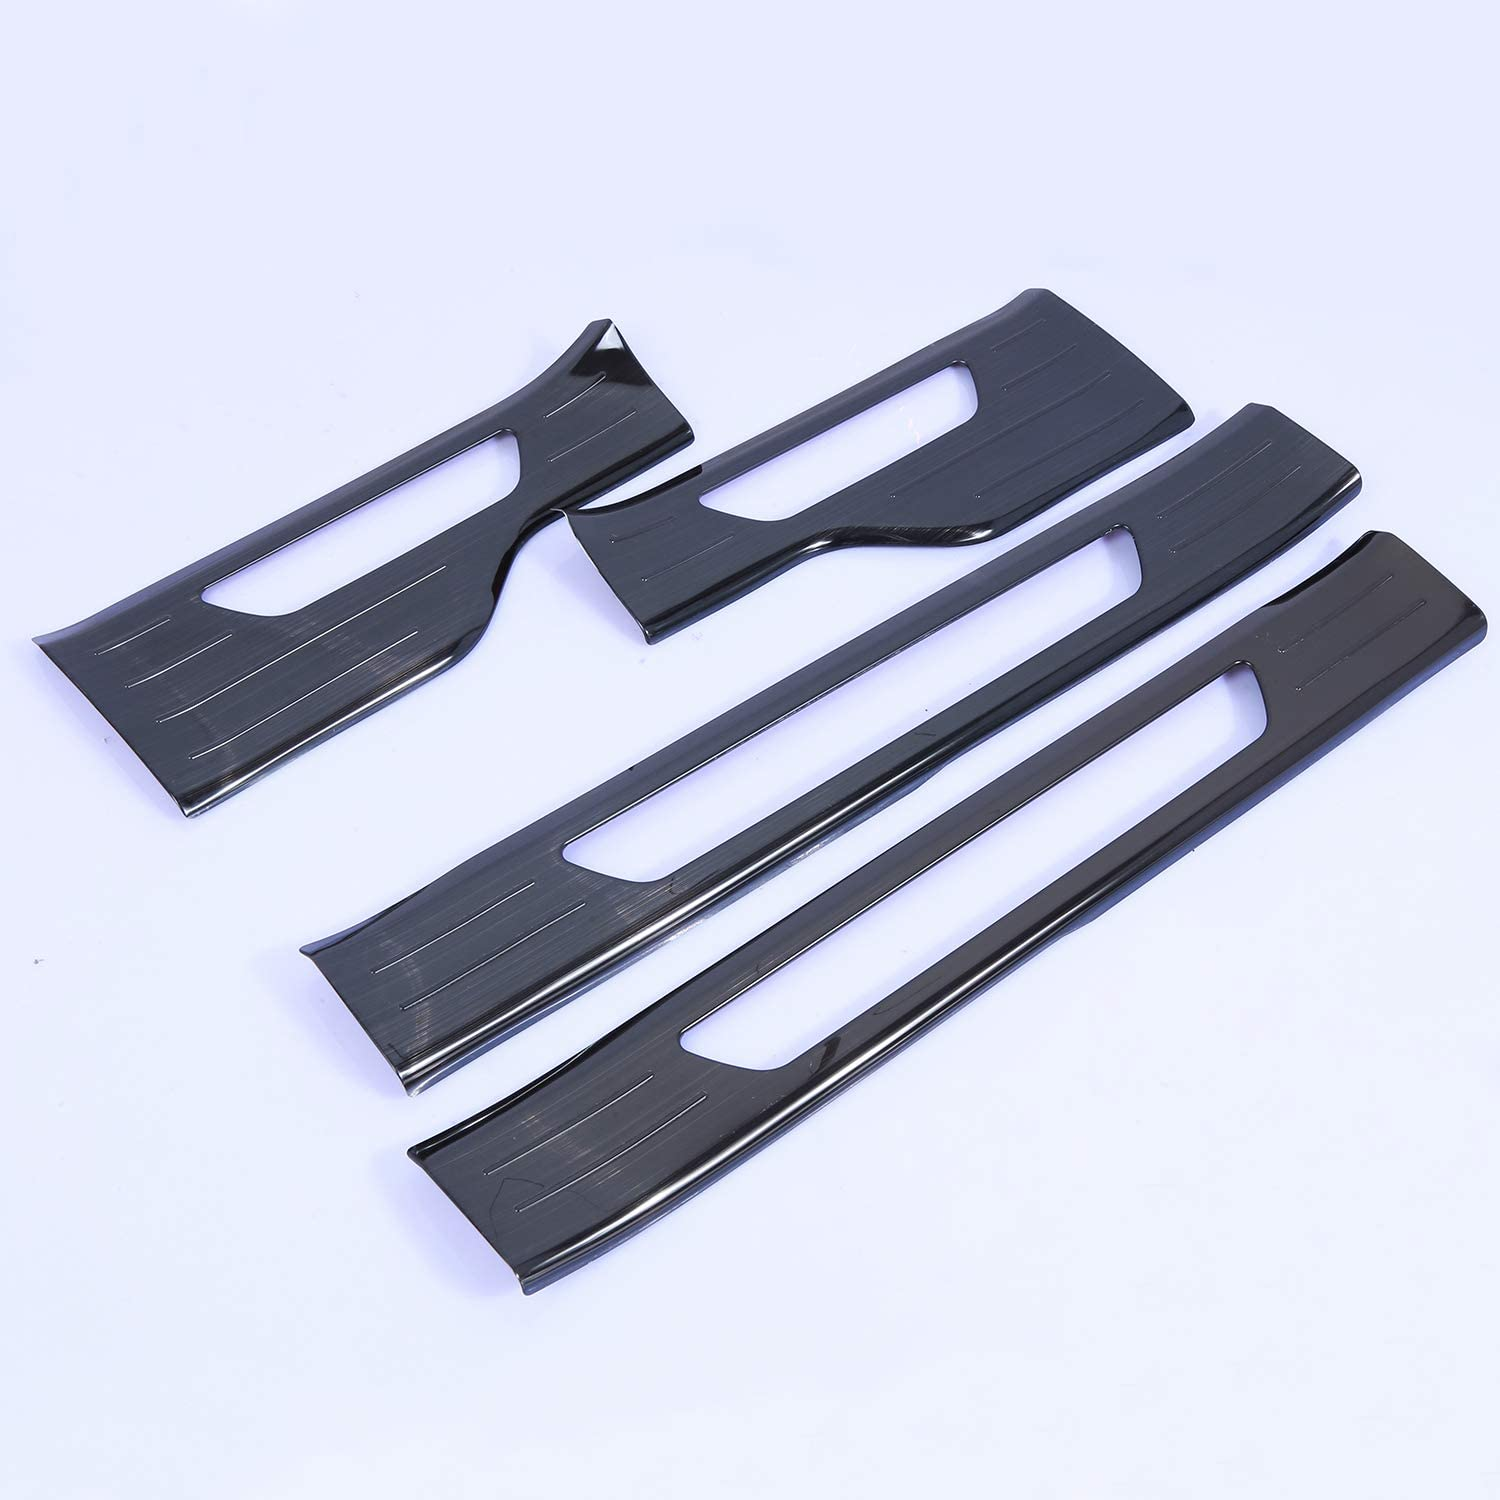 Wotefusi Black Door Sill Scuff Plate Trims Set Guards Regular Chicago Mall discount for